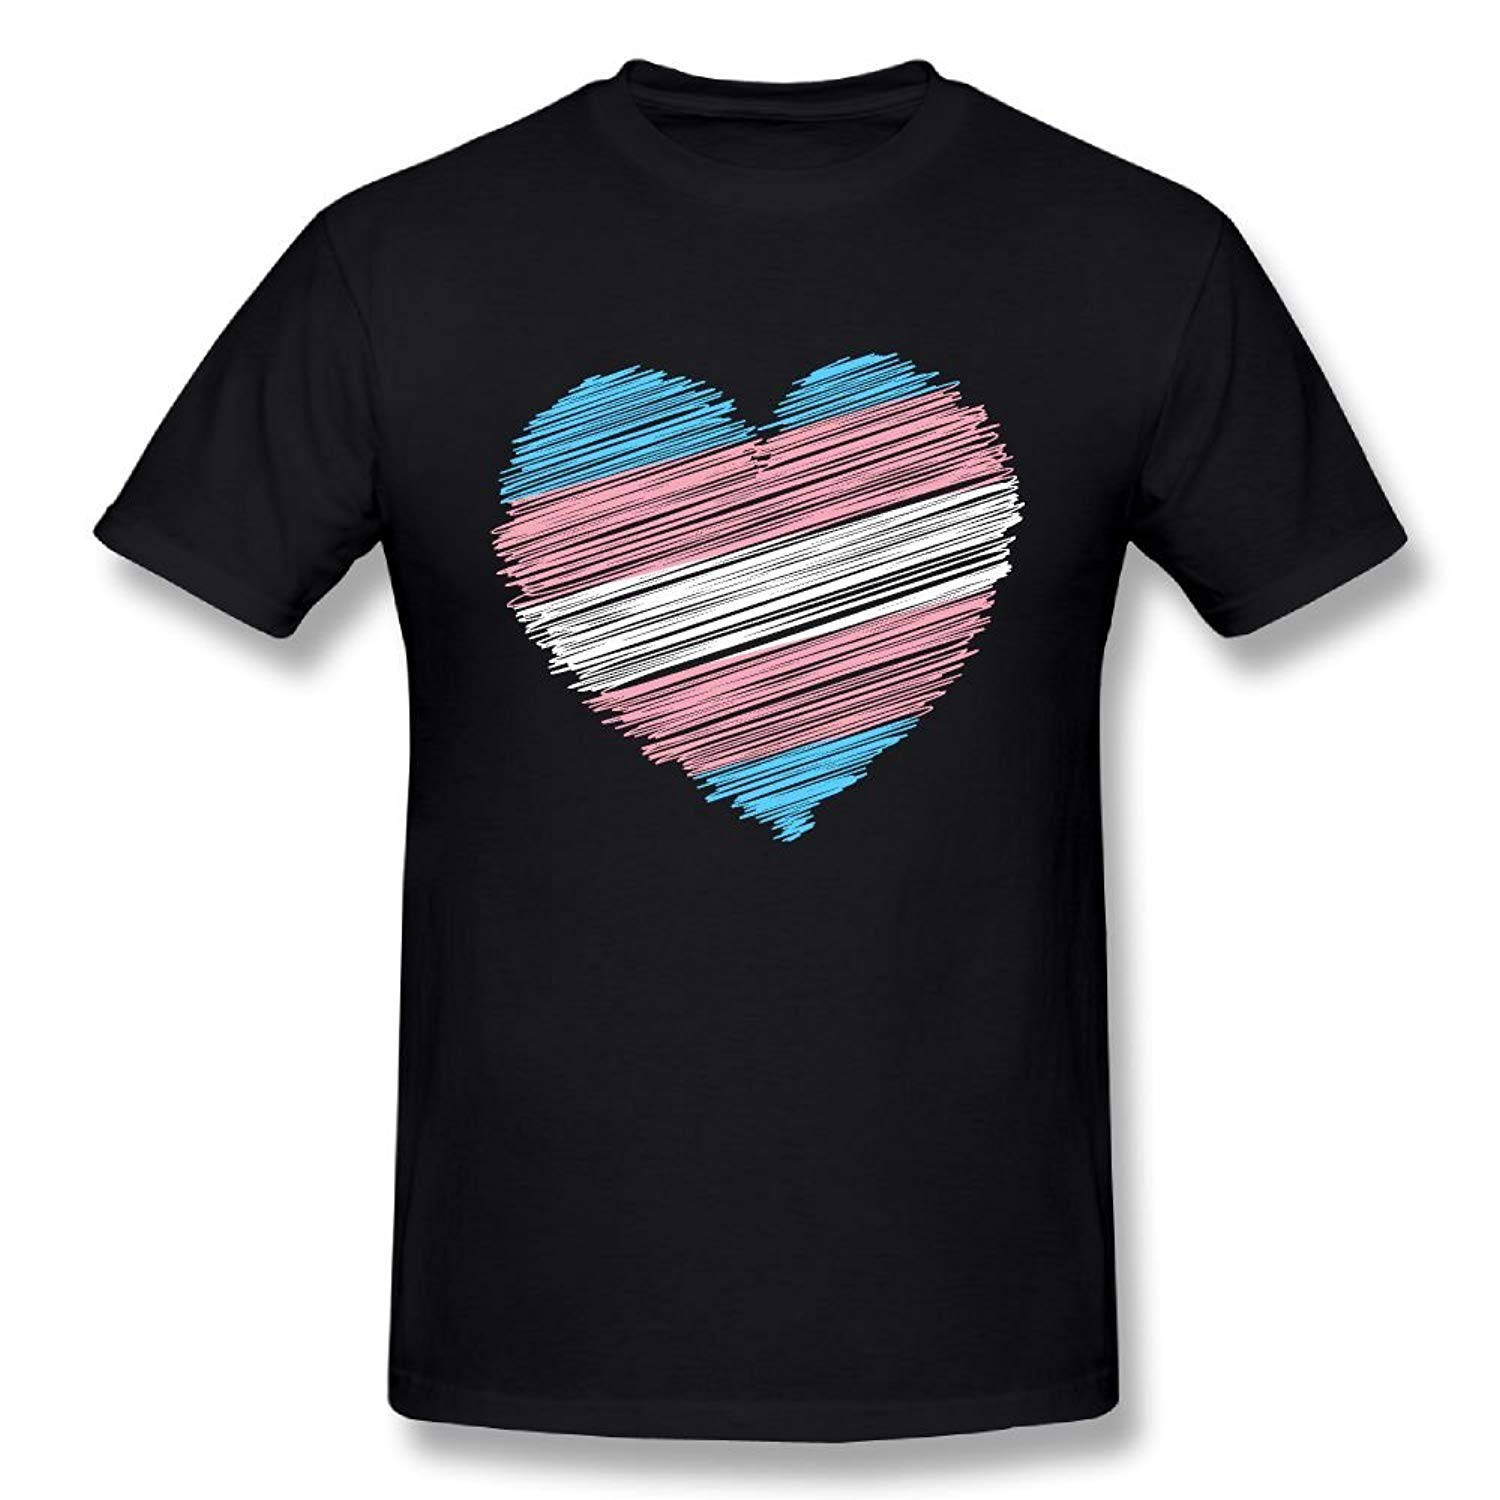 Trans Pride Love T-Shirt